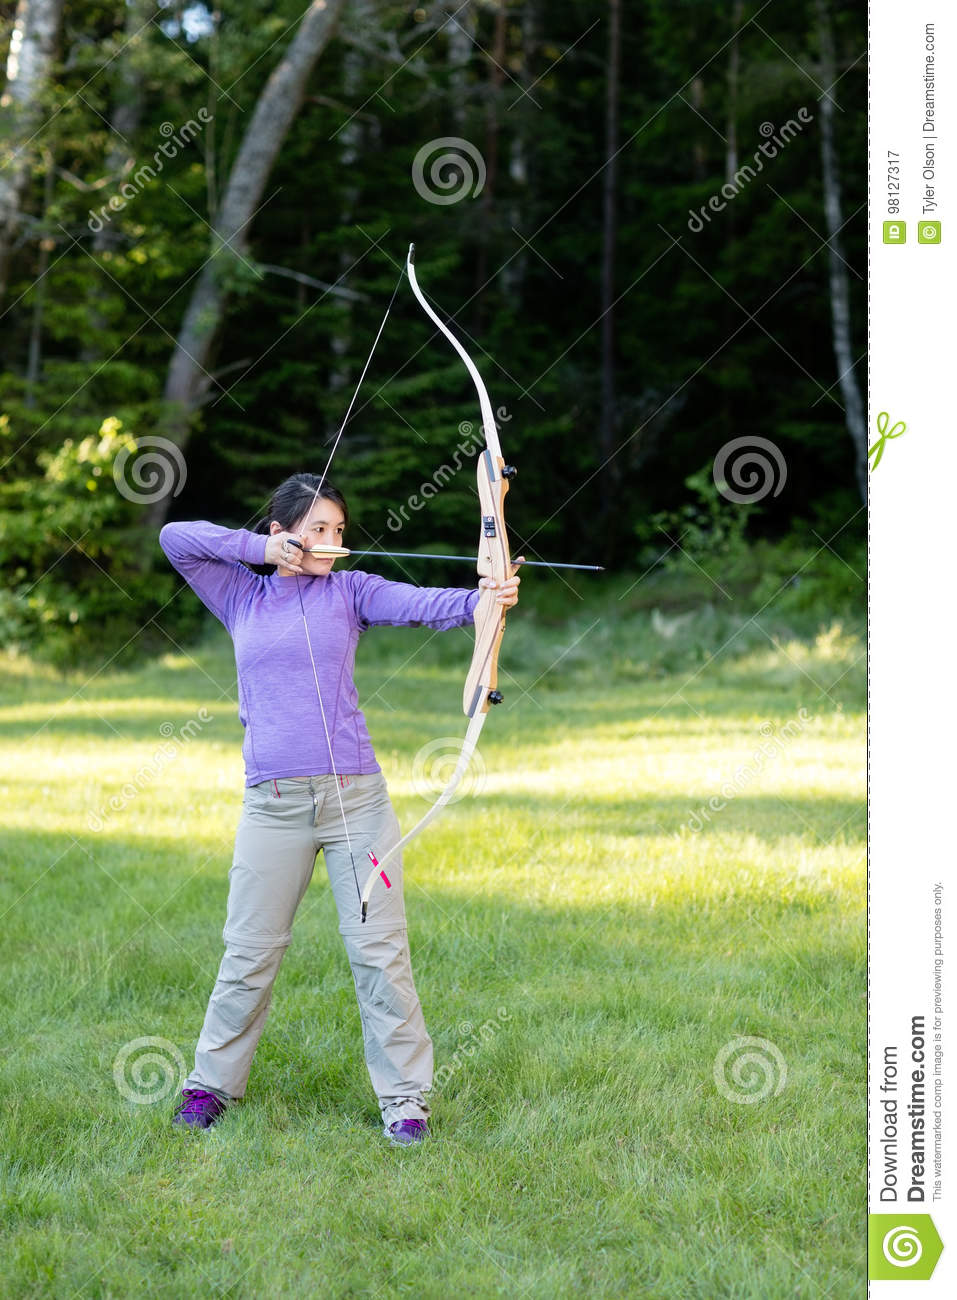 Confident Woman Aiming With Bow And Arrow In Forest Stock